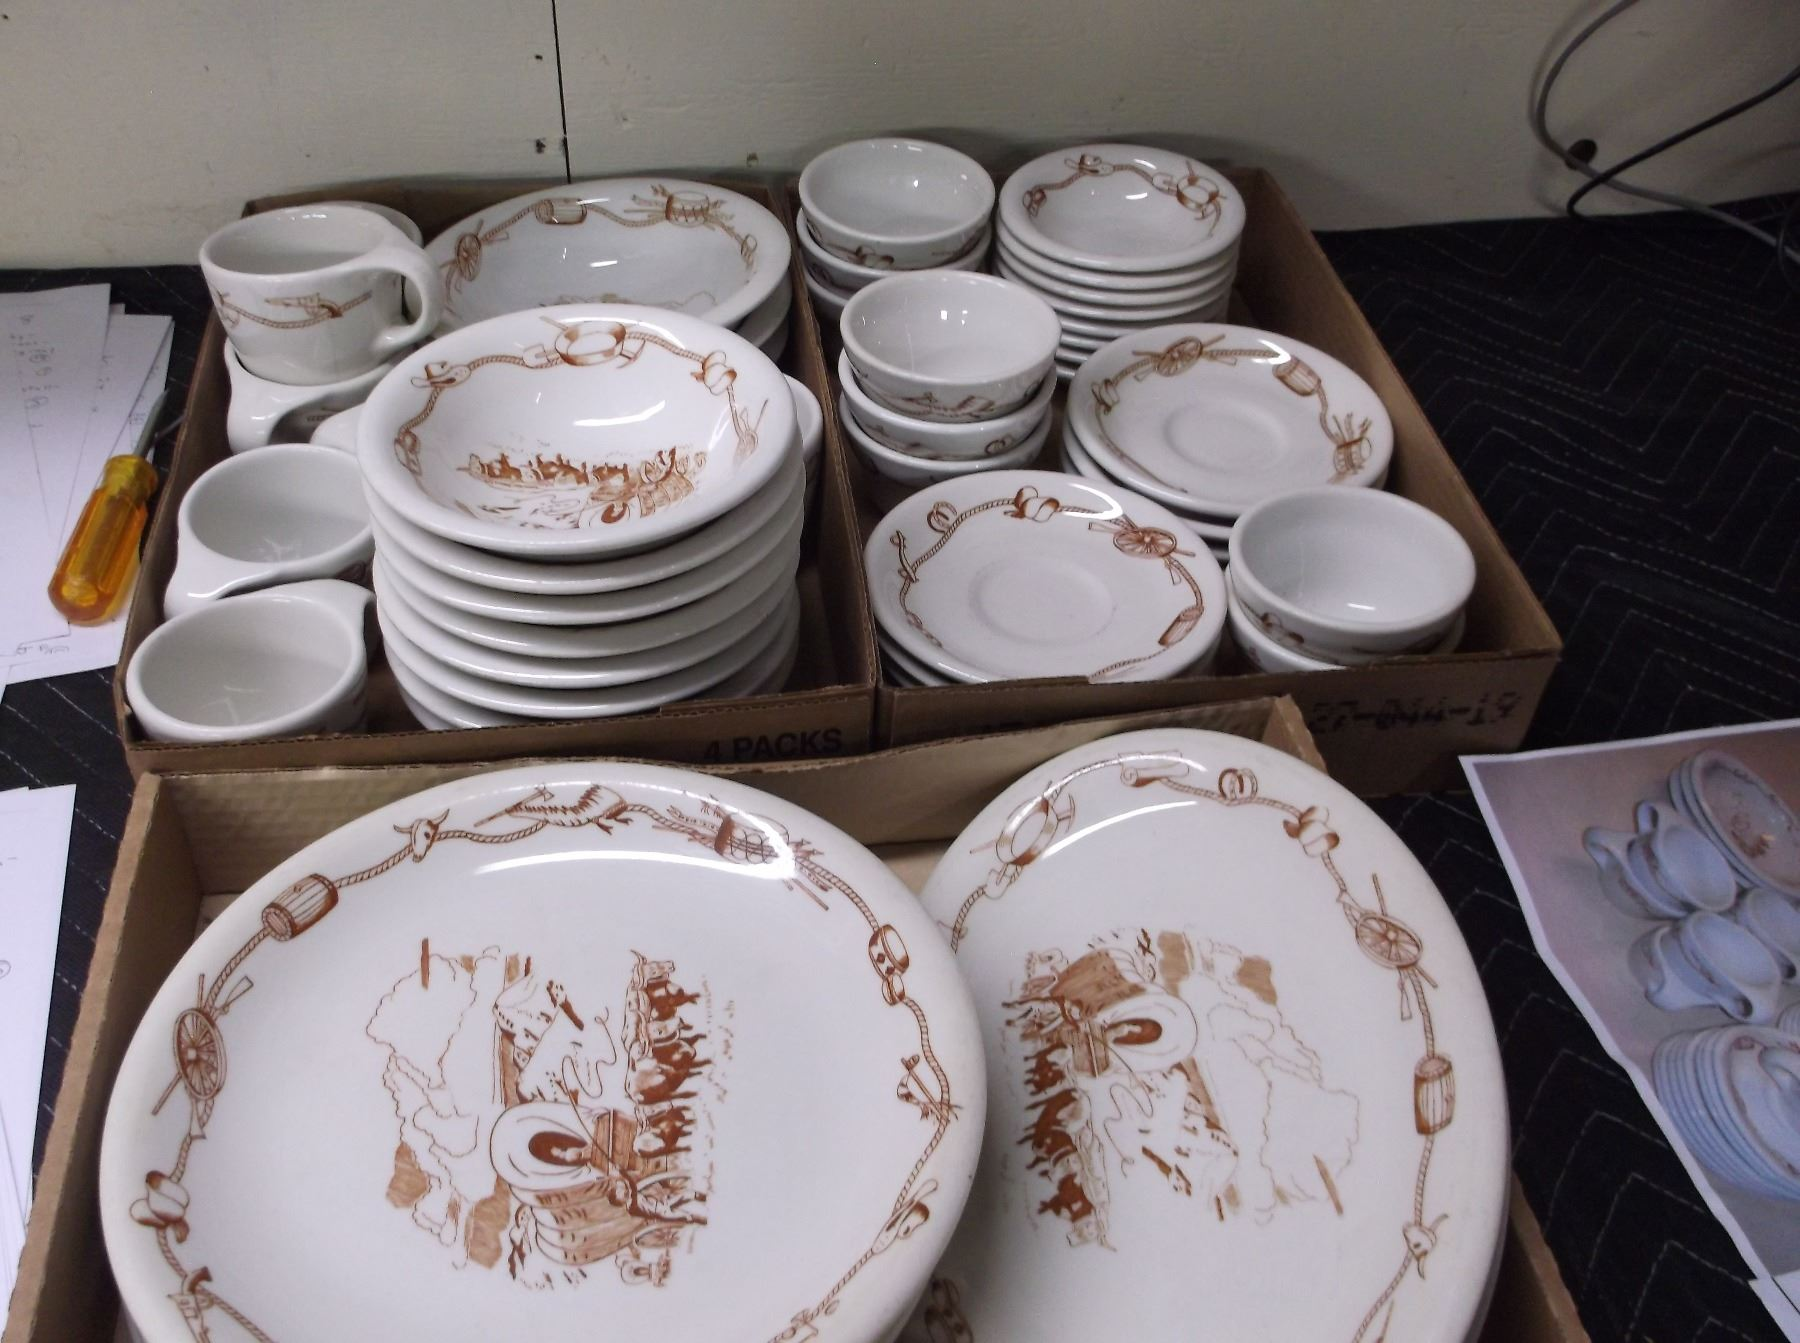 ... Image 5  This is a Used Western Dinnerware Set from Harolds Club in Reno- & This is a Used Western Dinnerware Set from Harolds Club in Reno- It ...